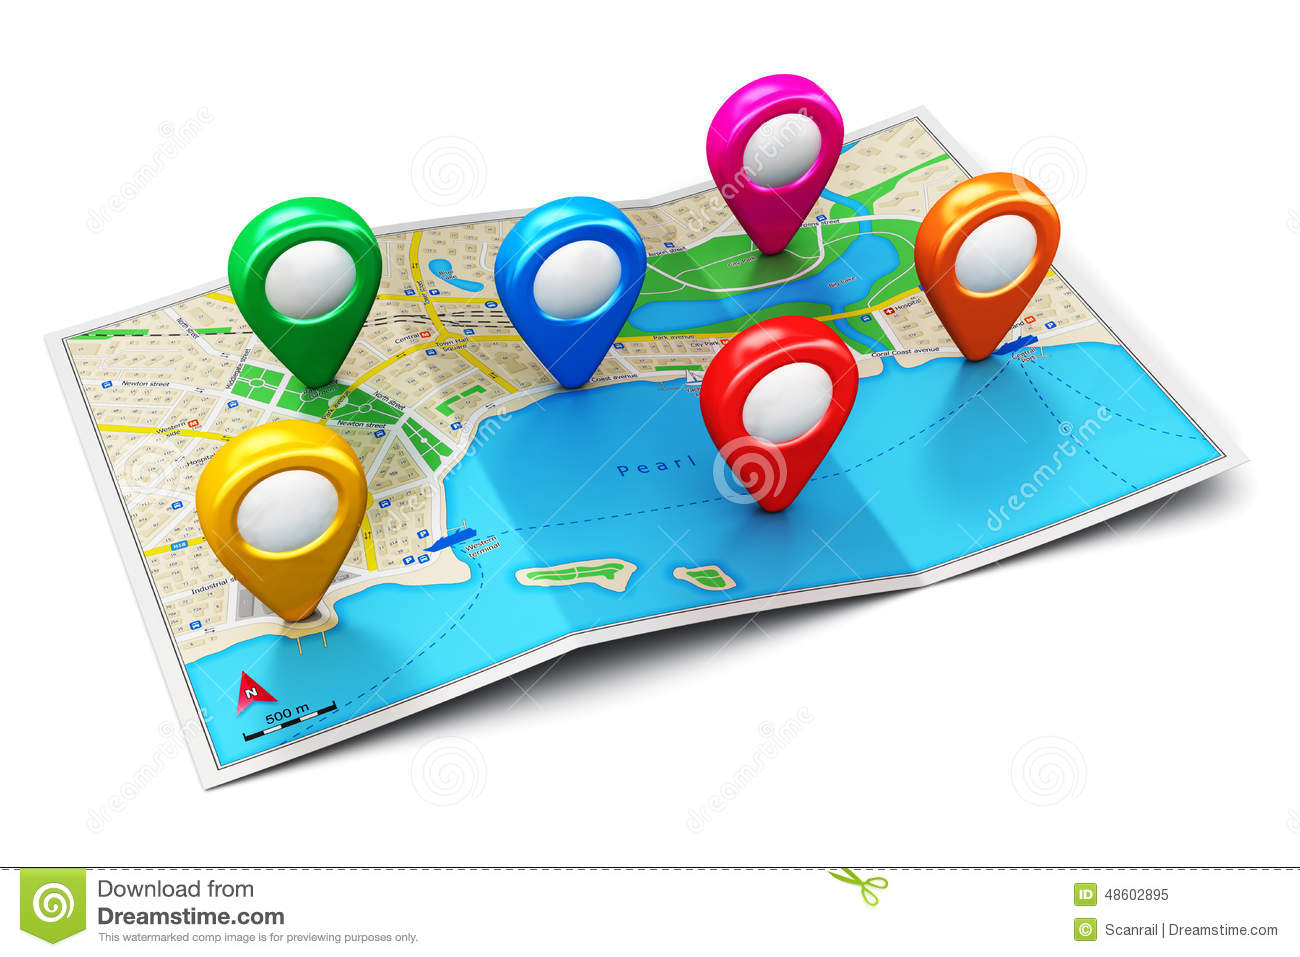 Location Position Icon Free Vector Graphic On Pixabay: GPS Navigation Concept Stock Illustration